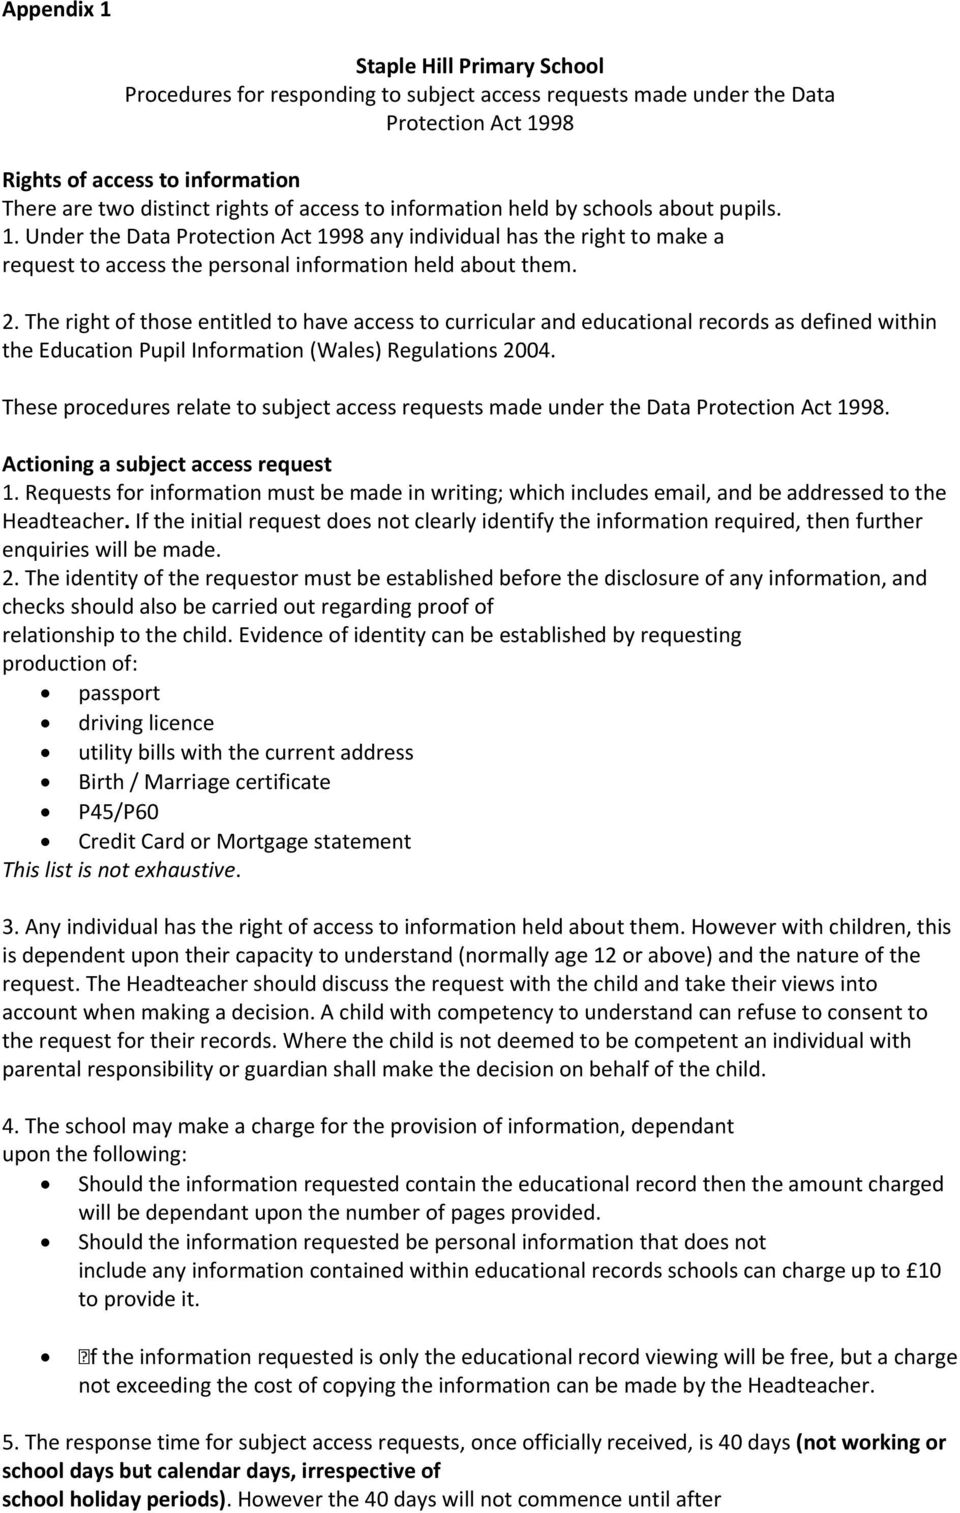 The right of those entitled to have access to curricular and educational records as defined within the Education Pupil Information (Wales) Regulations 2004.